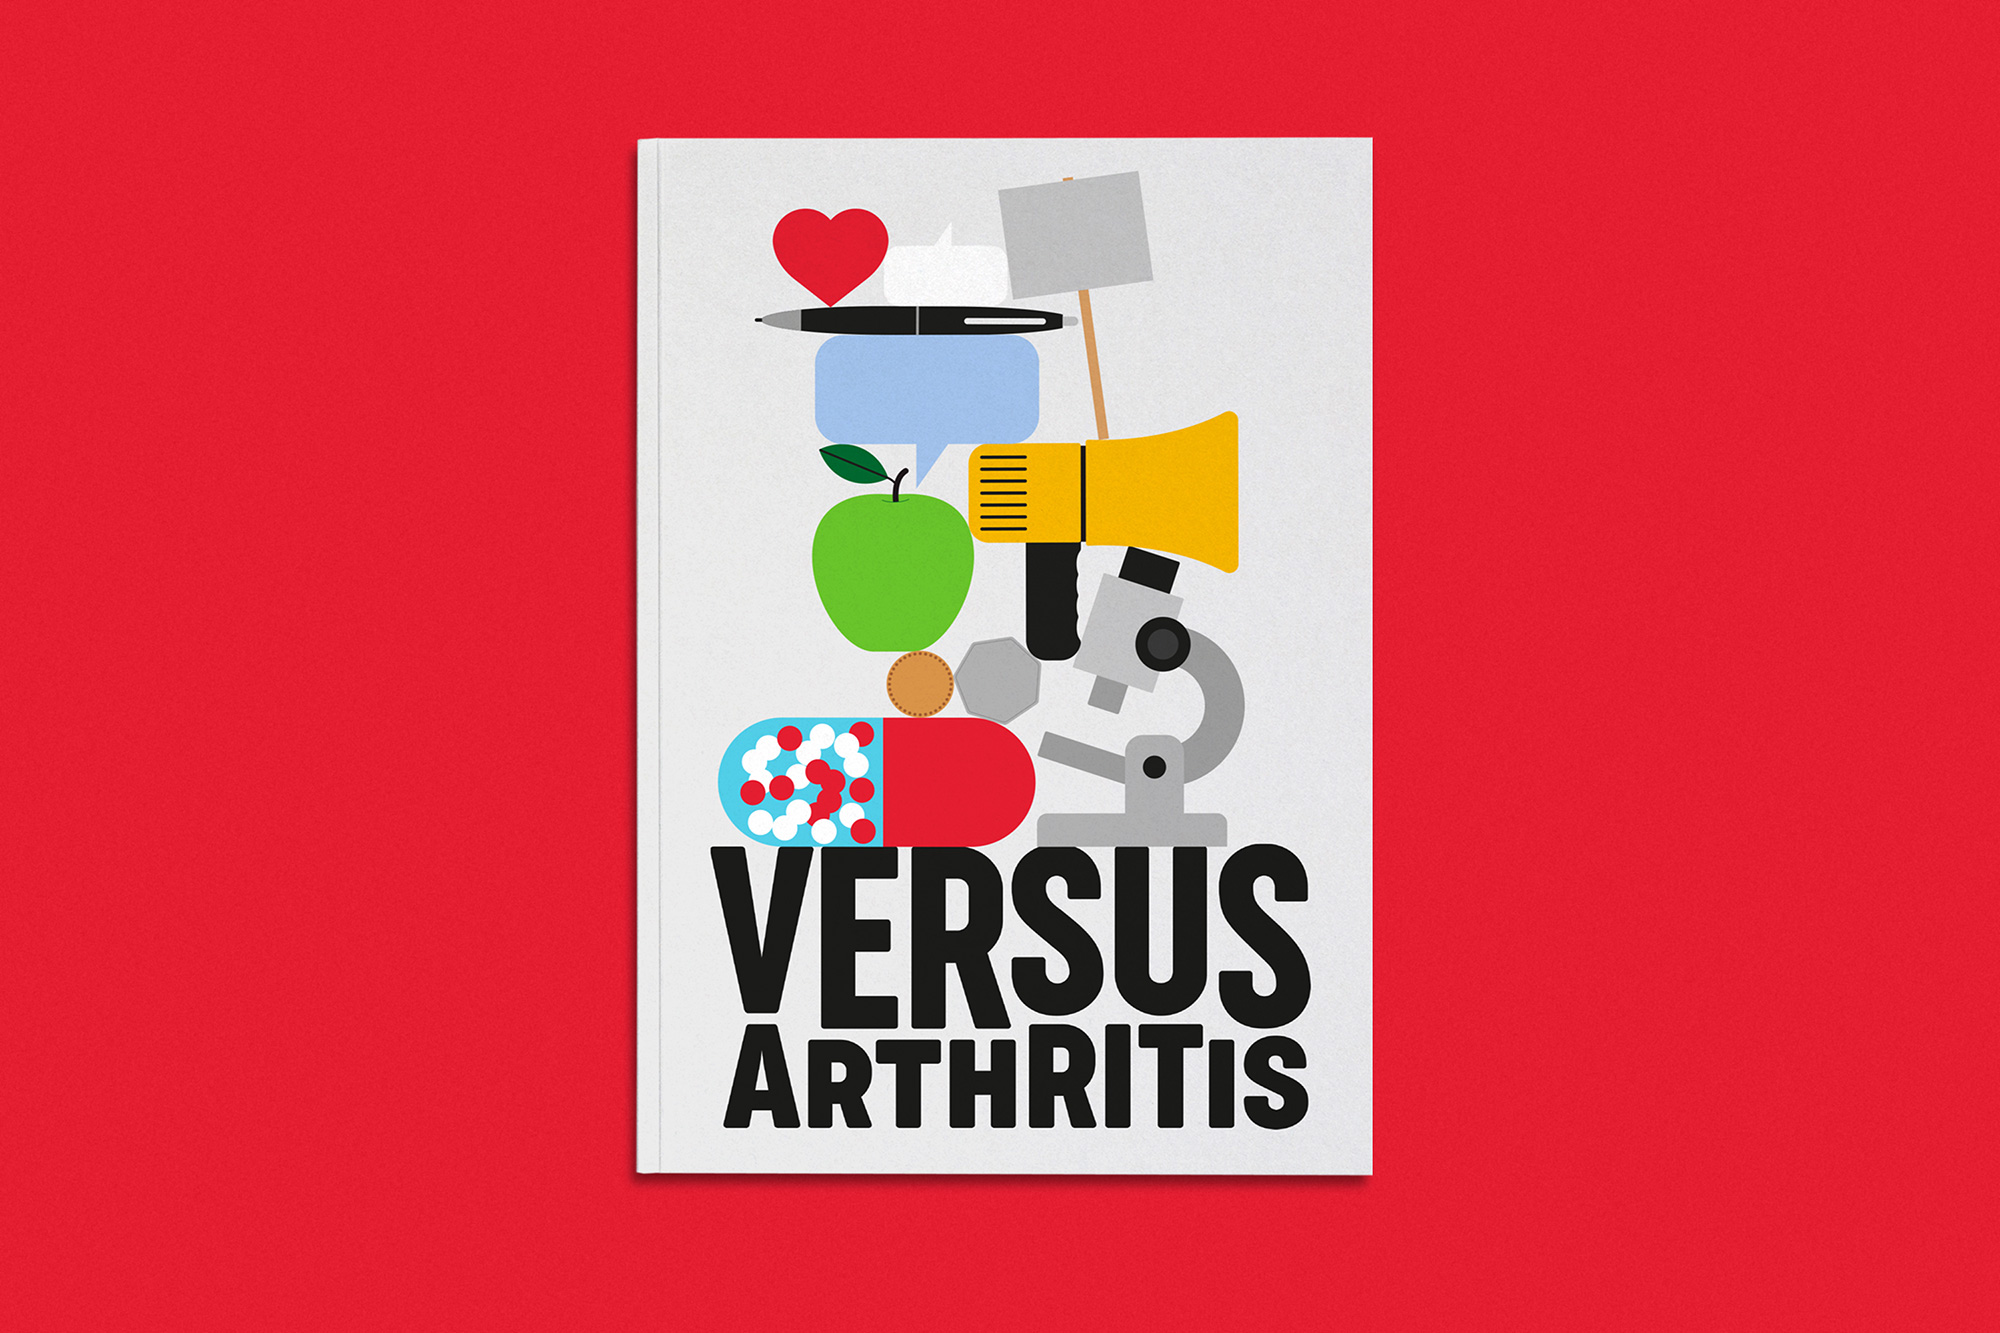 New Name, Logo, and Identity for Versus Arthritis by Re